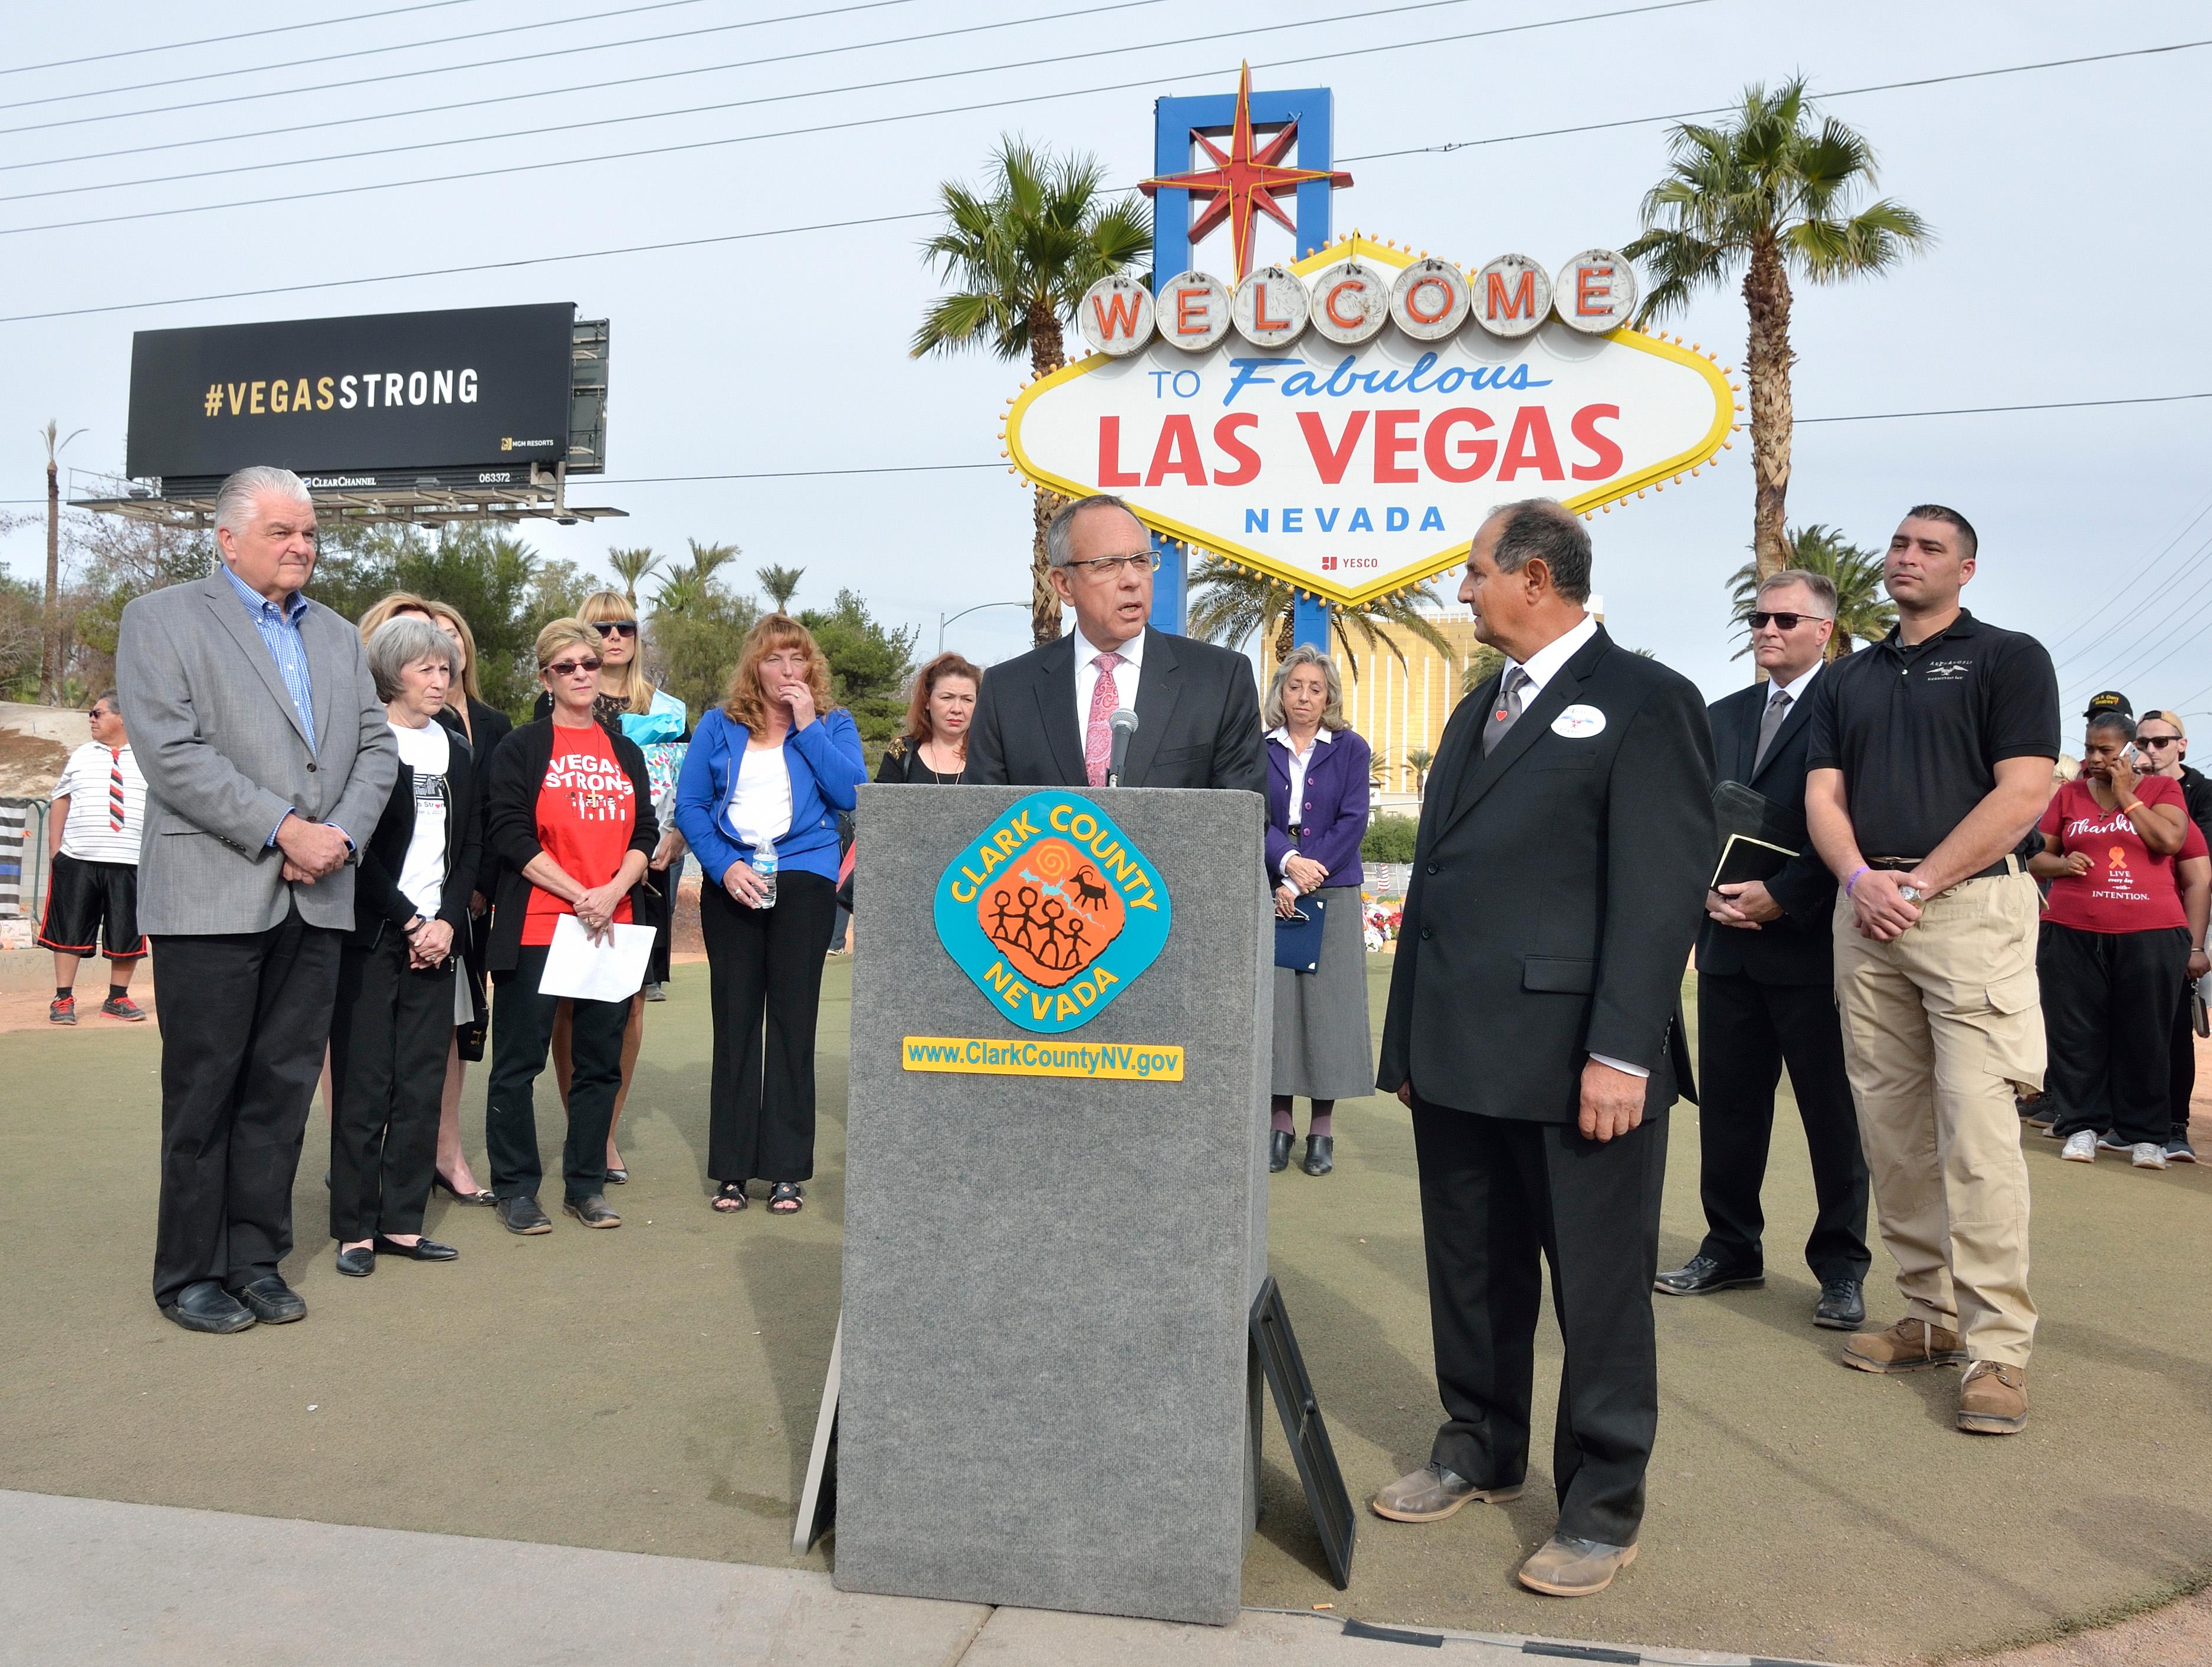 "Clark County Commissioner Jim Gibson, at podium, speaks as Greg Zanis listens during ""Greg Zanis Day"" at the Welcome to Fabulous Las Vegas sign on the Las Vegas Strip on Sunday, Nov. 12, 2017. Zanis, a carpenter from Aurora, Ill., was recognized by the Clark County Commision for creating 58 crosses memorializing those who died during the Route 91 Harvest festival shooting on Oct. 1. The crosses were later moved to the Clark County Museum for its permanent collection. [Bill Hughes/Las Vegas News Bureau]"